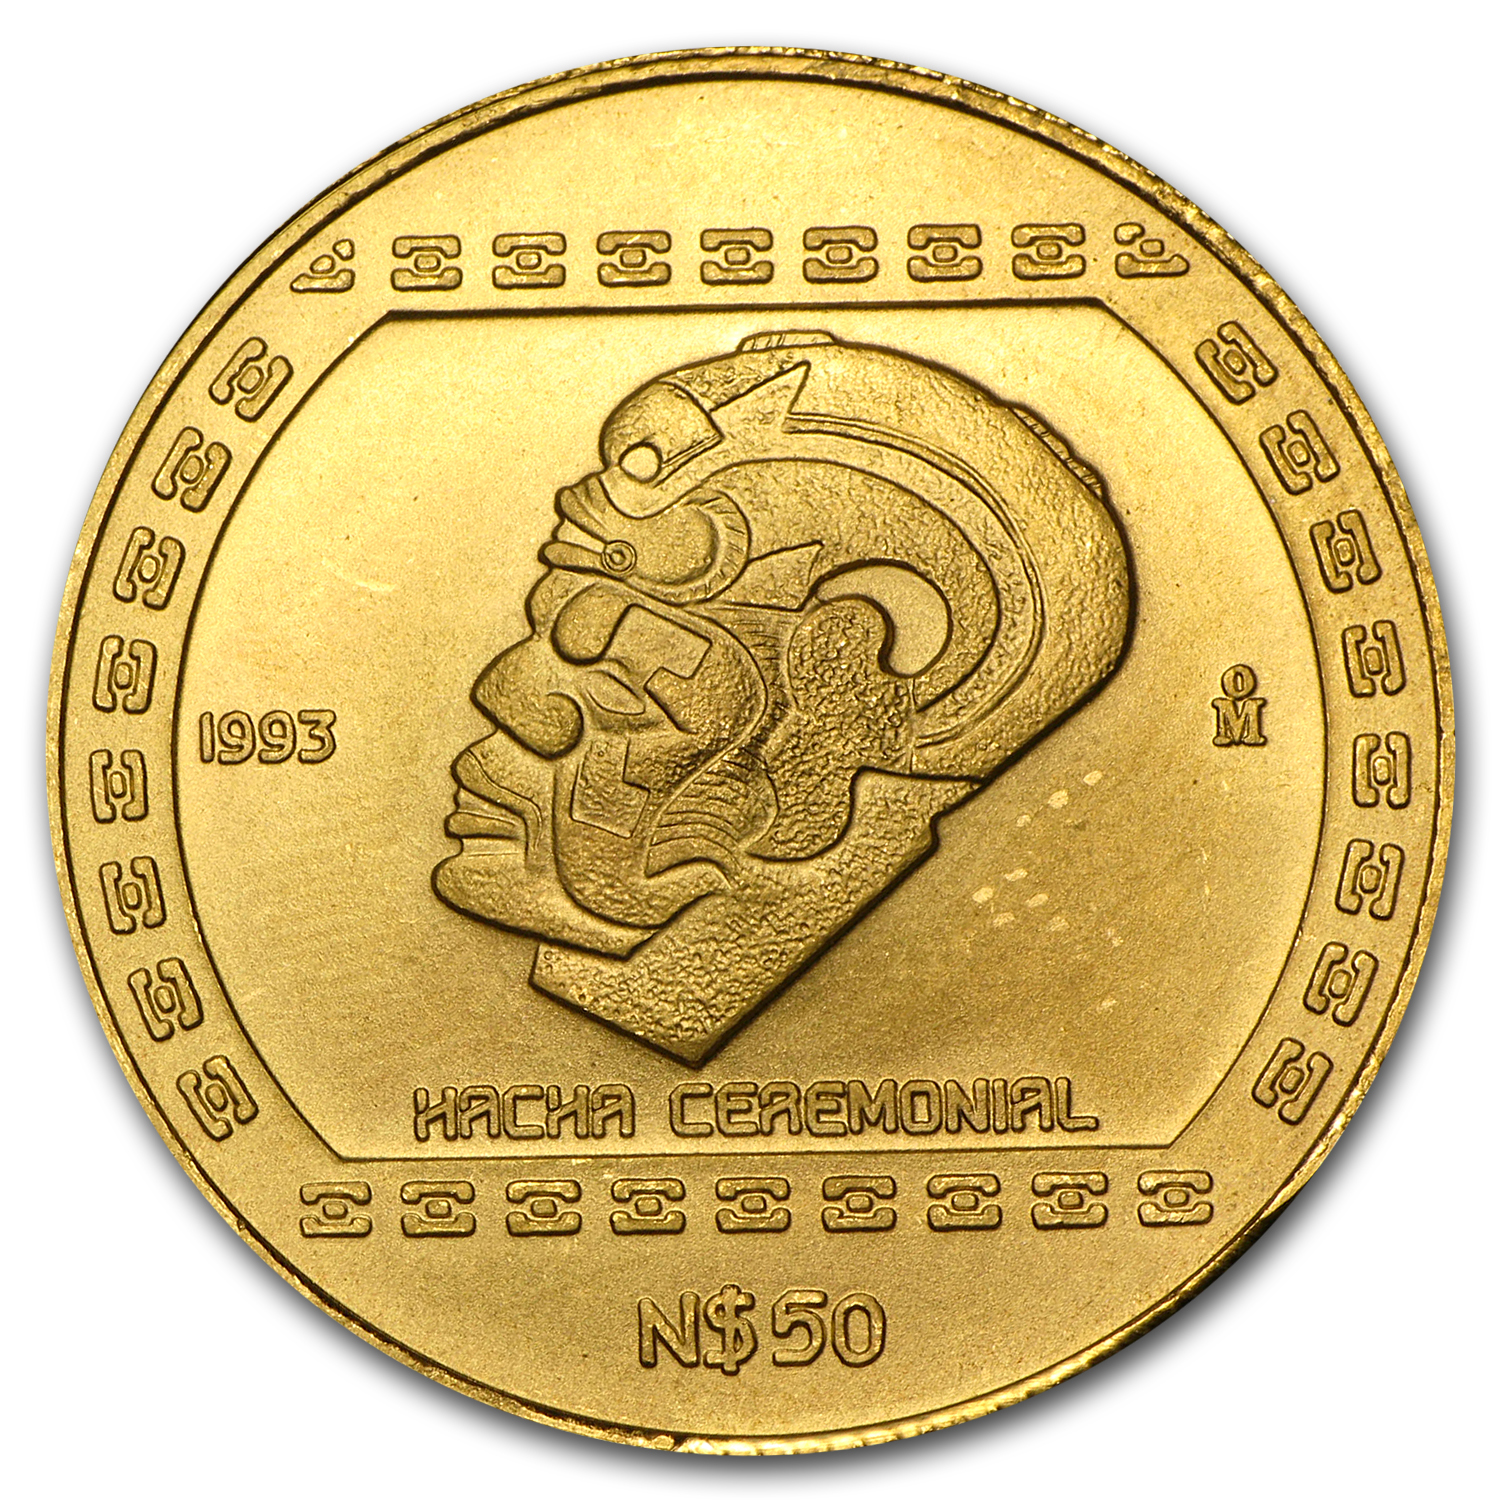 1993 Mexico Gold 50 Pesos Hacha Ceremonial BU